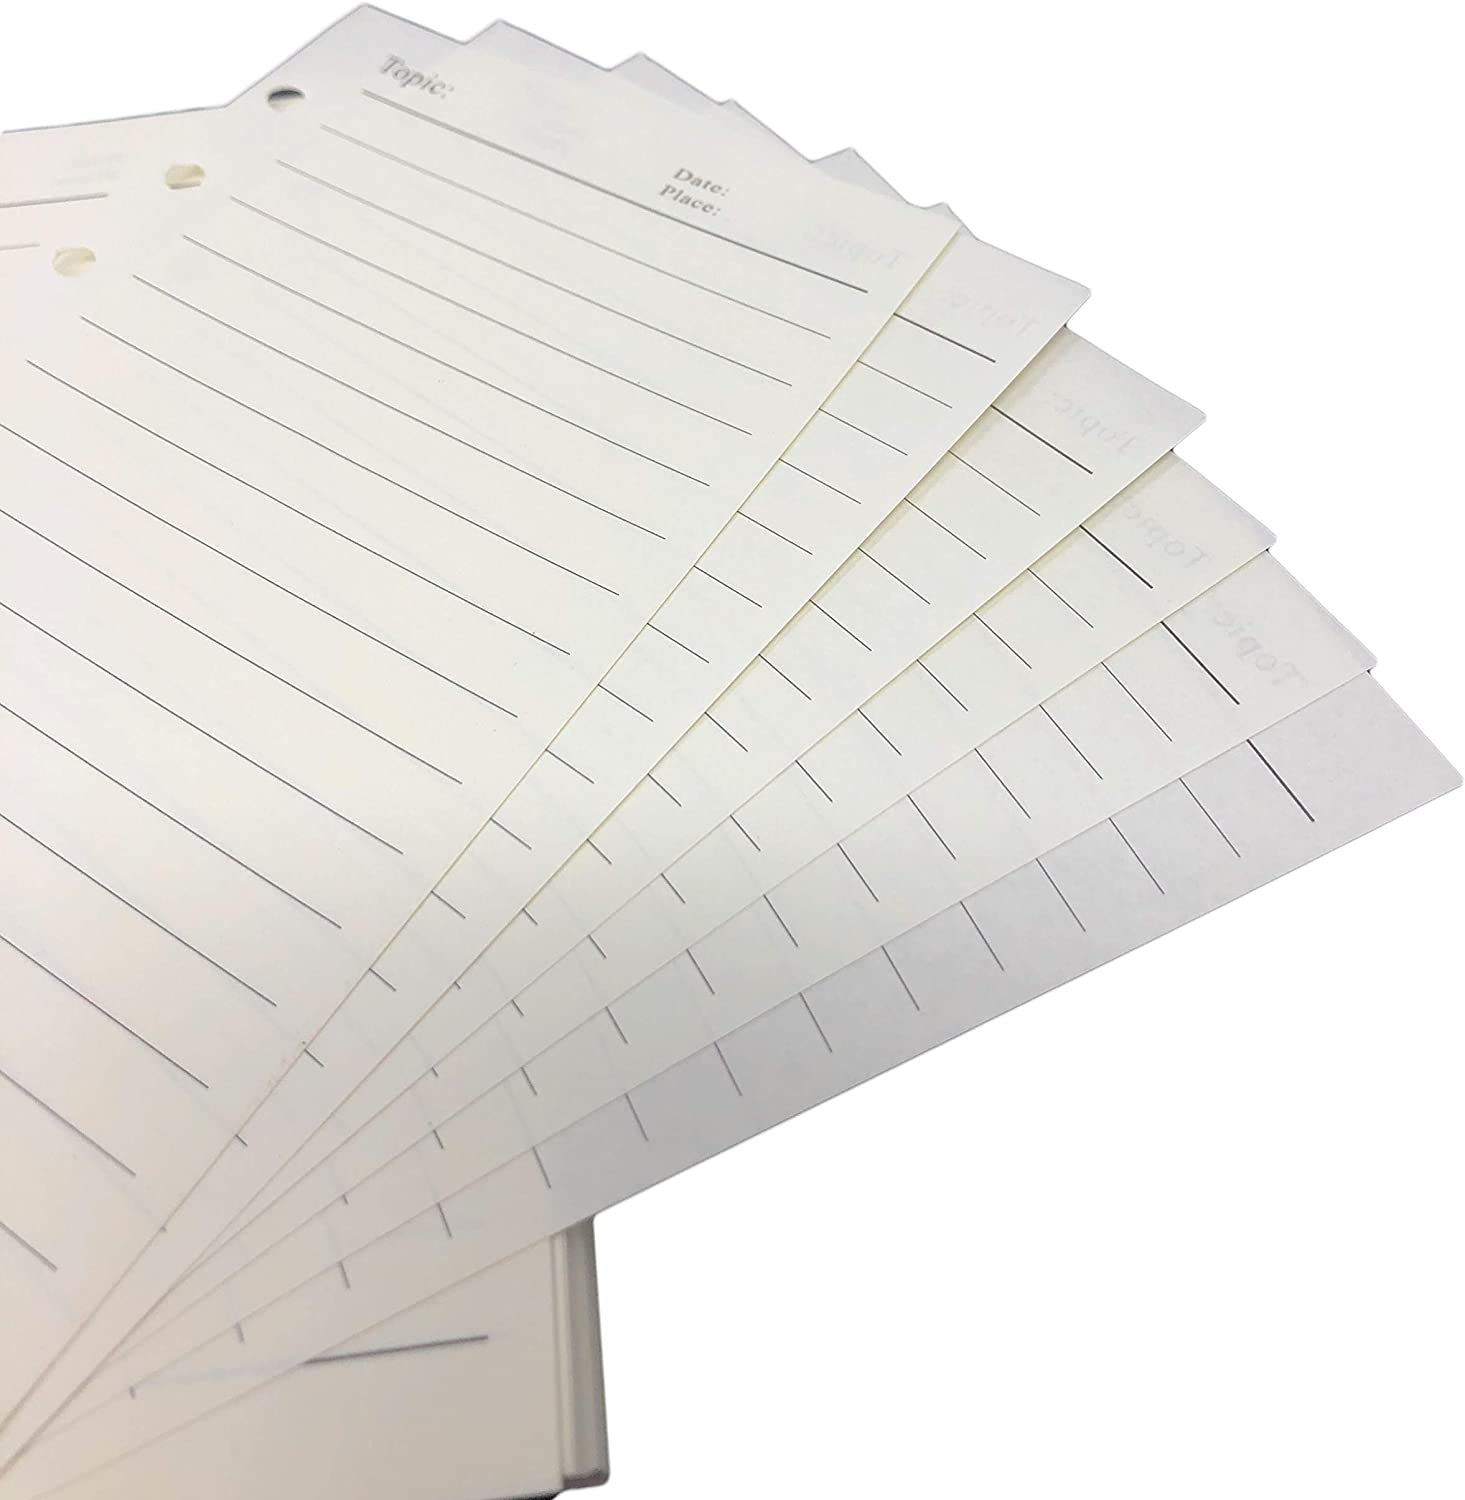 Rusoji 240 Sheets A6 Horizontal Line Paper Refills with 6 Hole Punched for 6-Ring Binder Notebook Pages Planner Journal